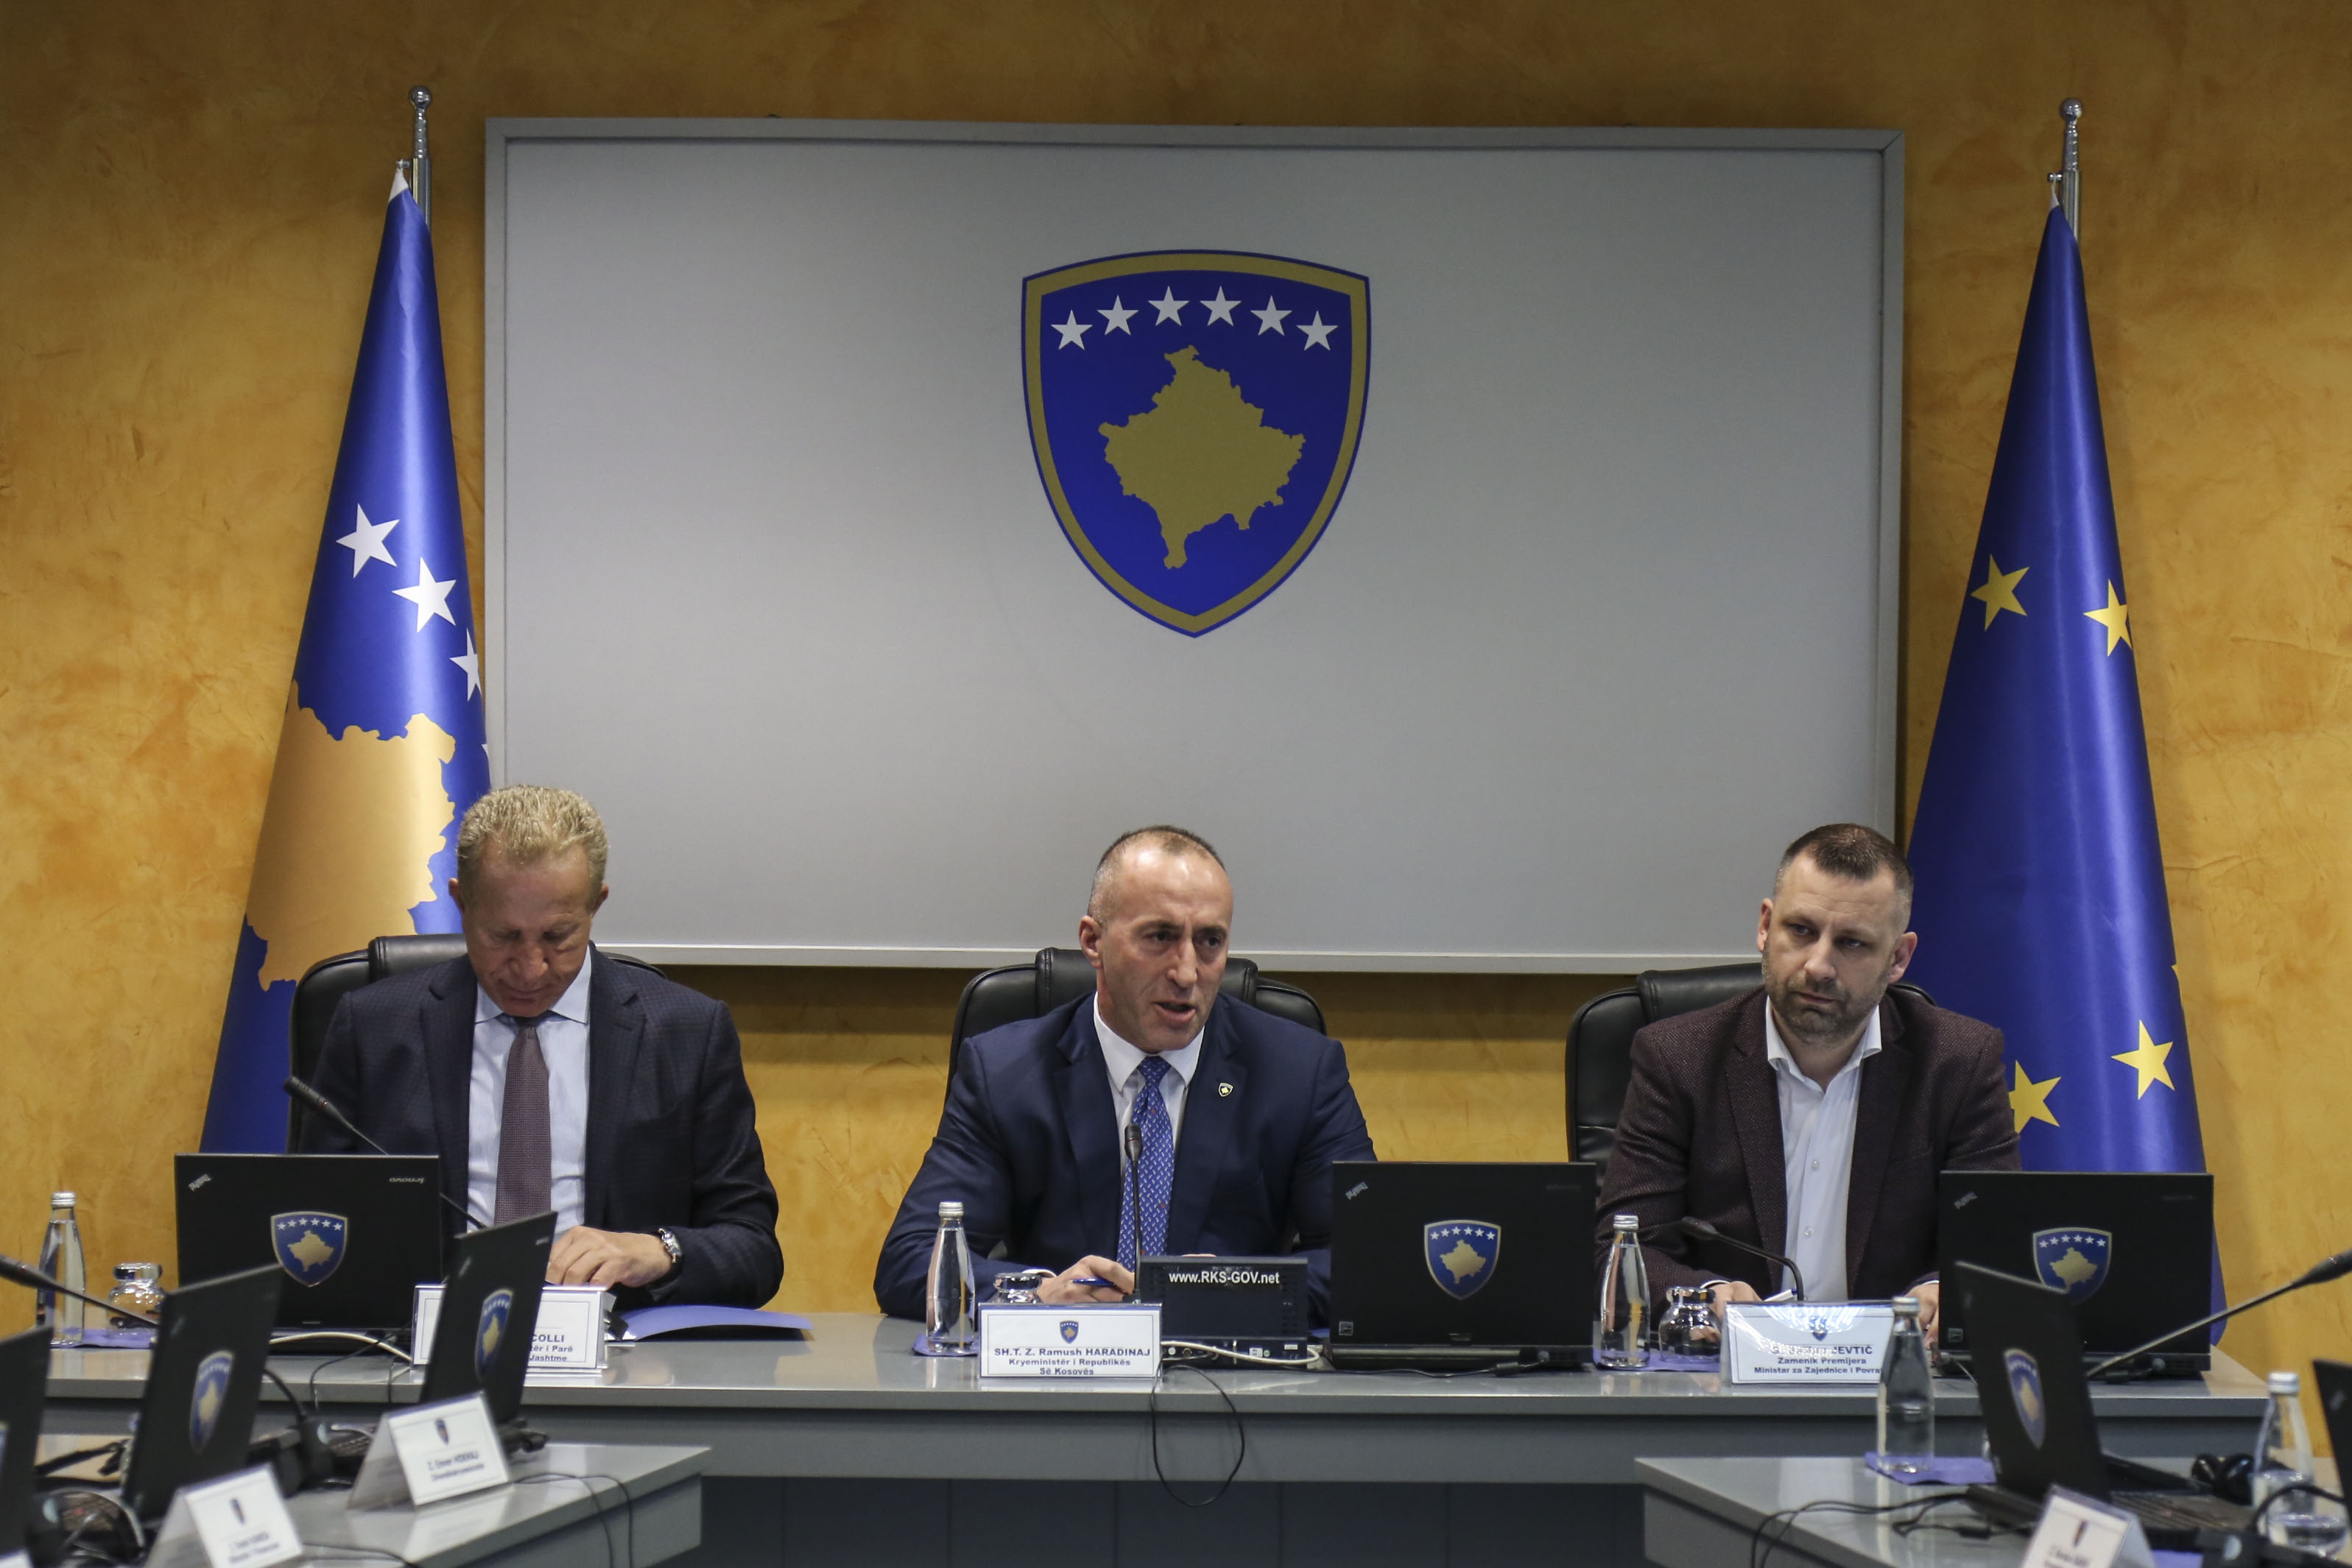 Kosovo's PM pledges that the visa regime will be liberalized by the end of the year